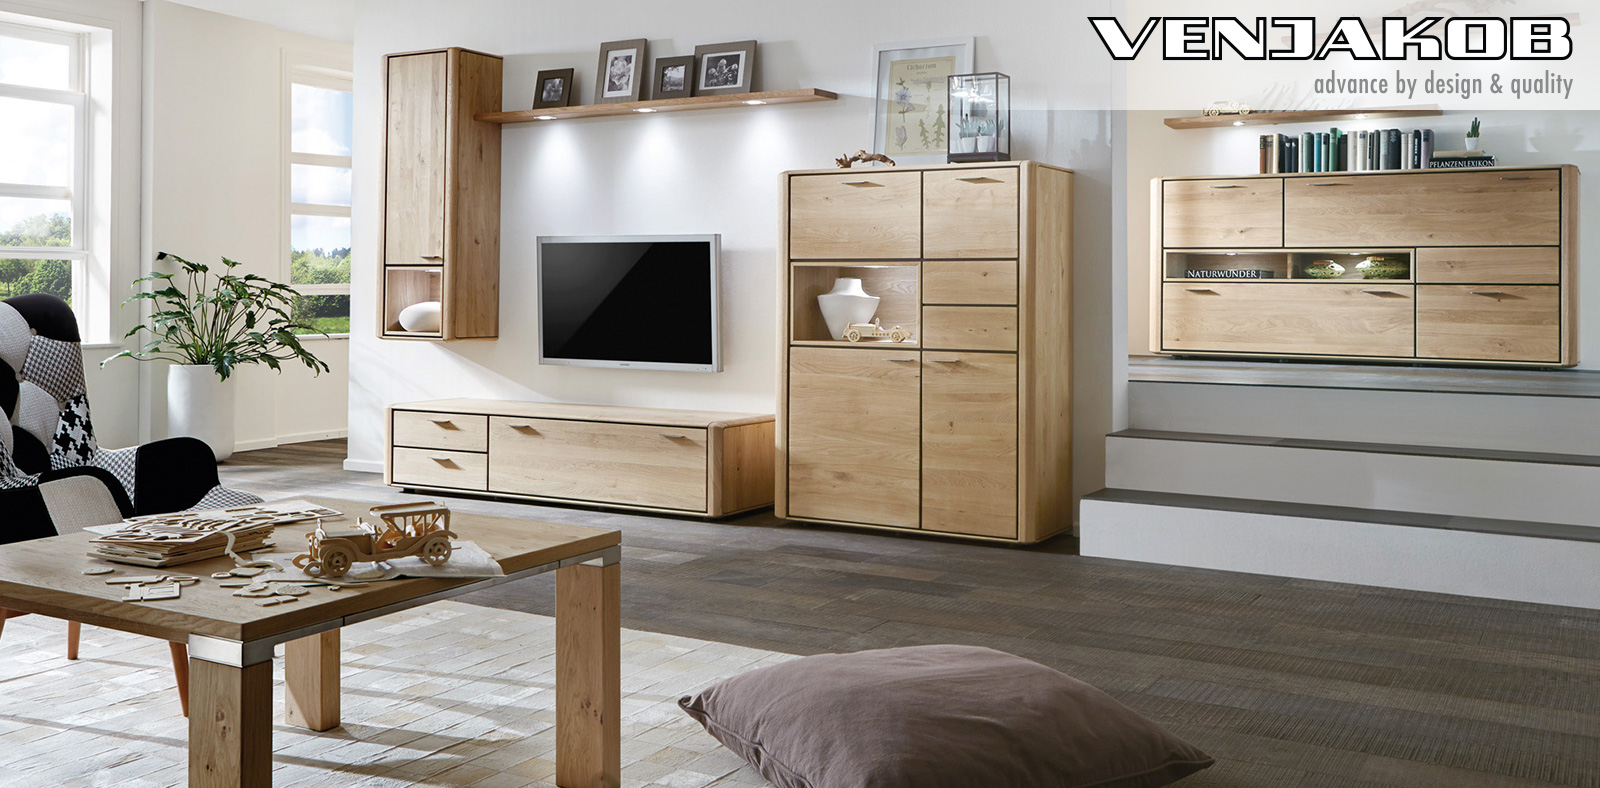 Venjakob Emilio Living Collection